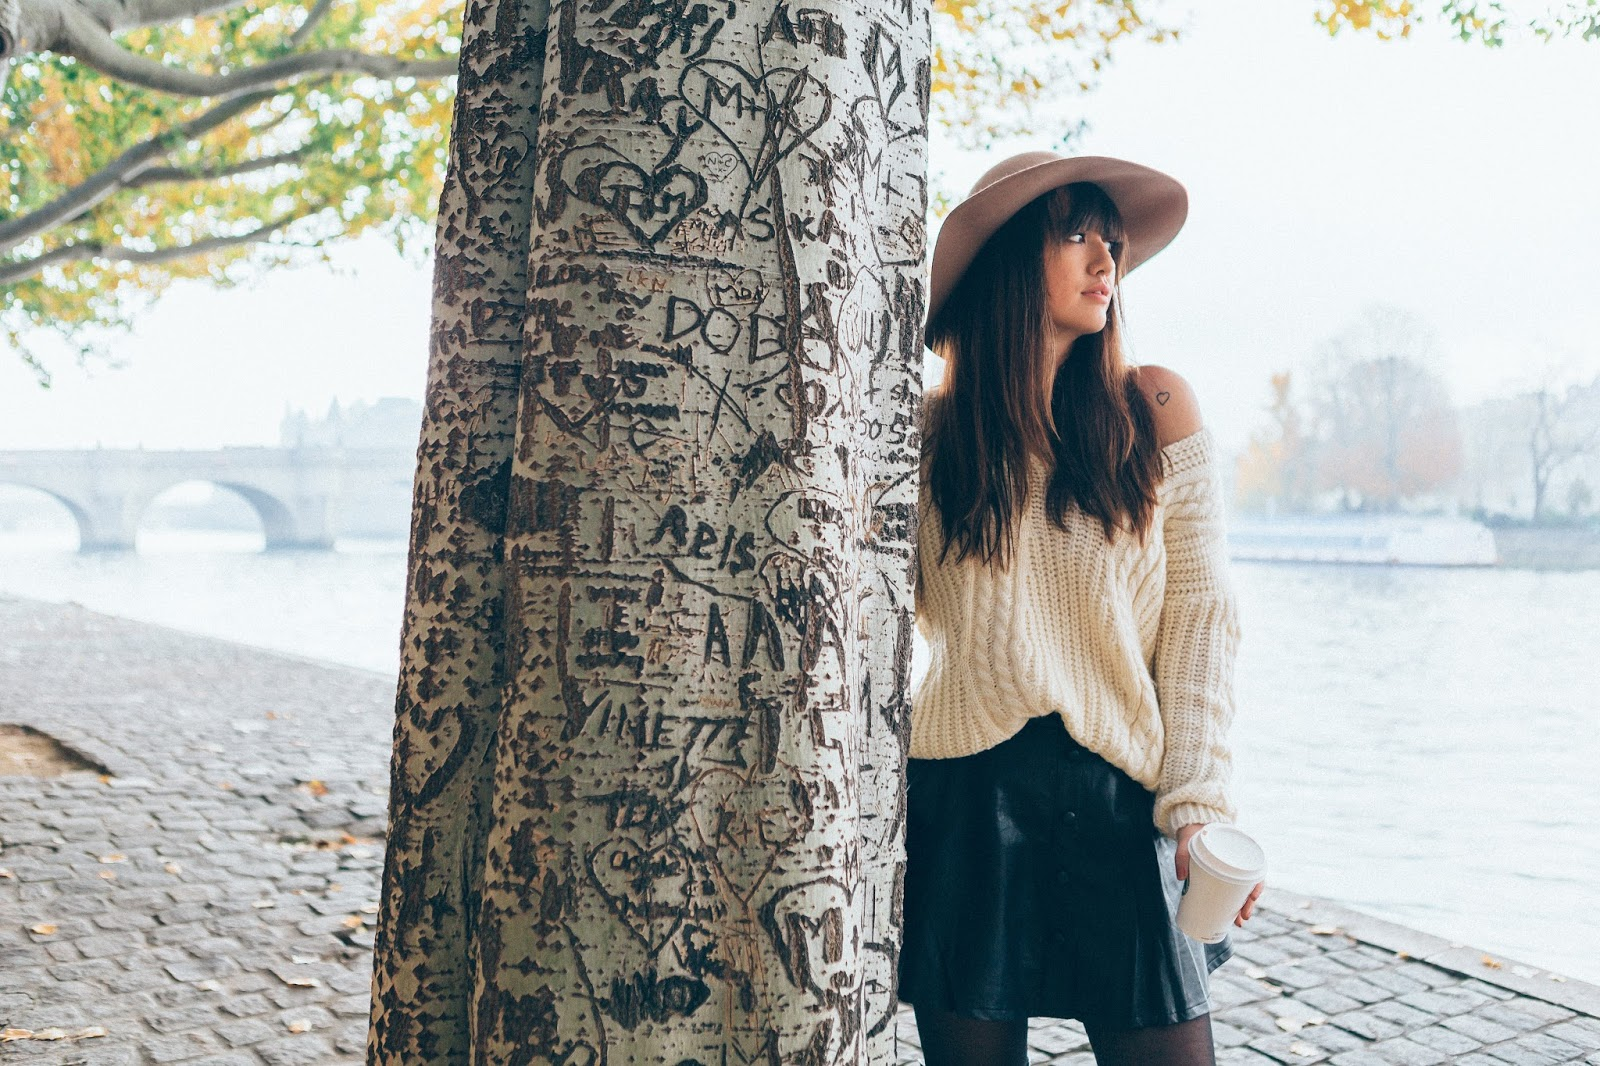 巴黎ian fashion  博主 , Look,  街头风 , Autumn Look, Fashion photography, Meet me in paree